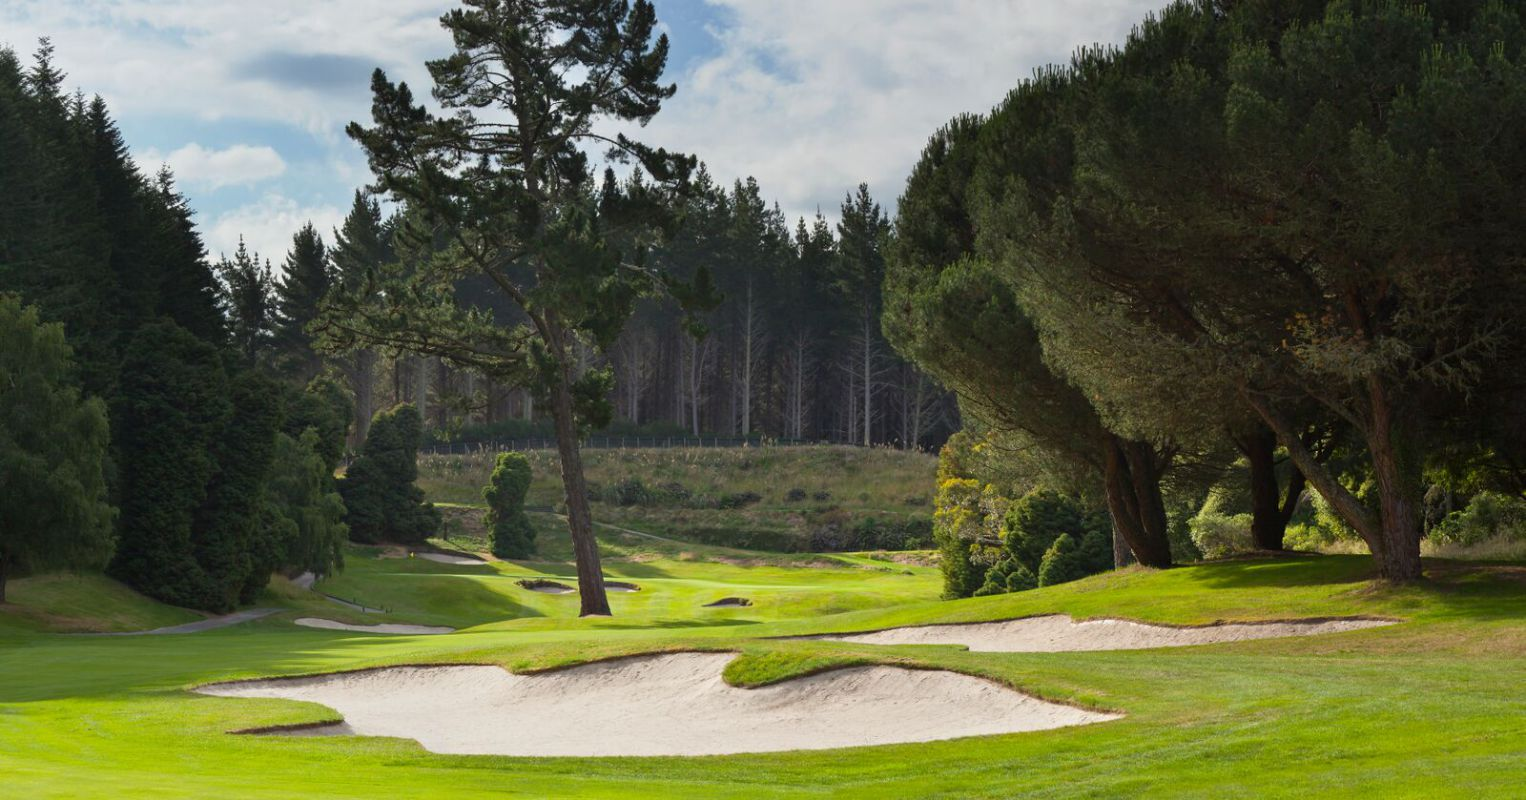 wairakei-sanctuary-internationa-golf-club-57